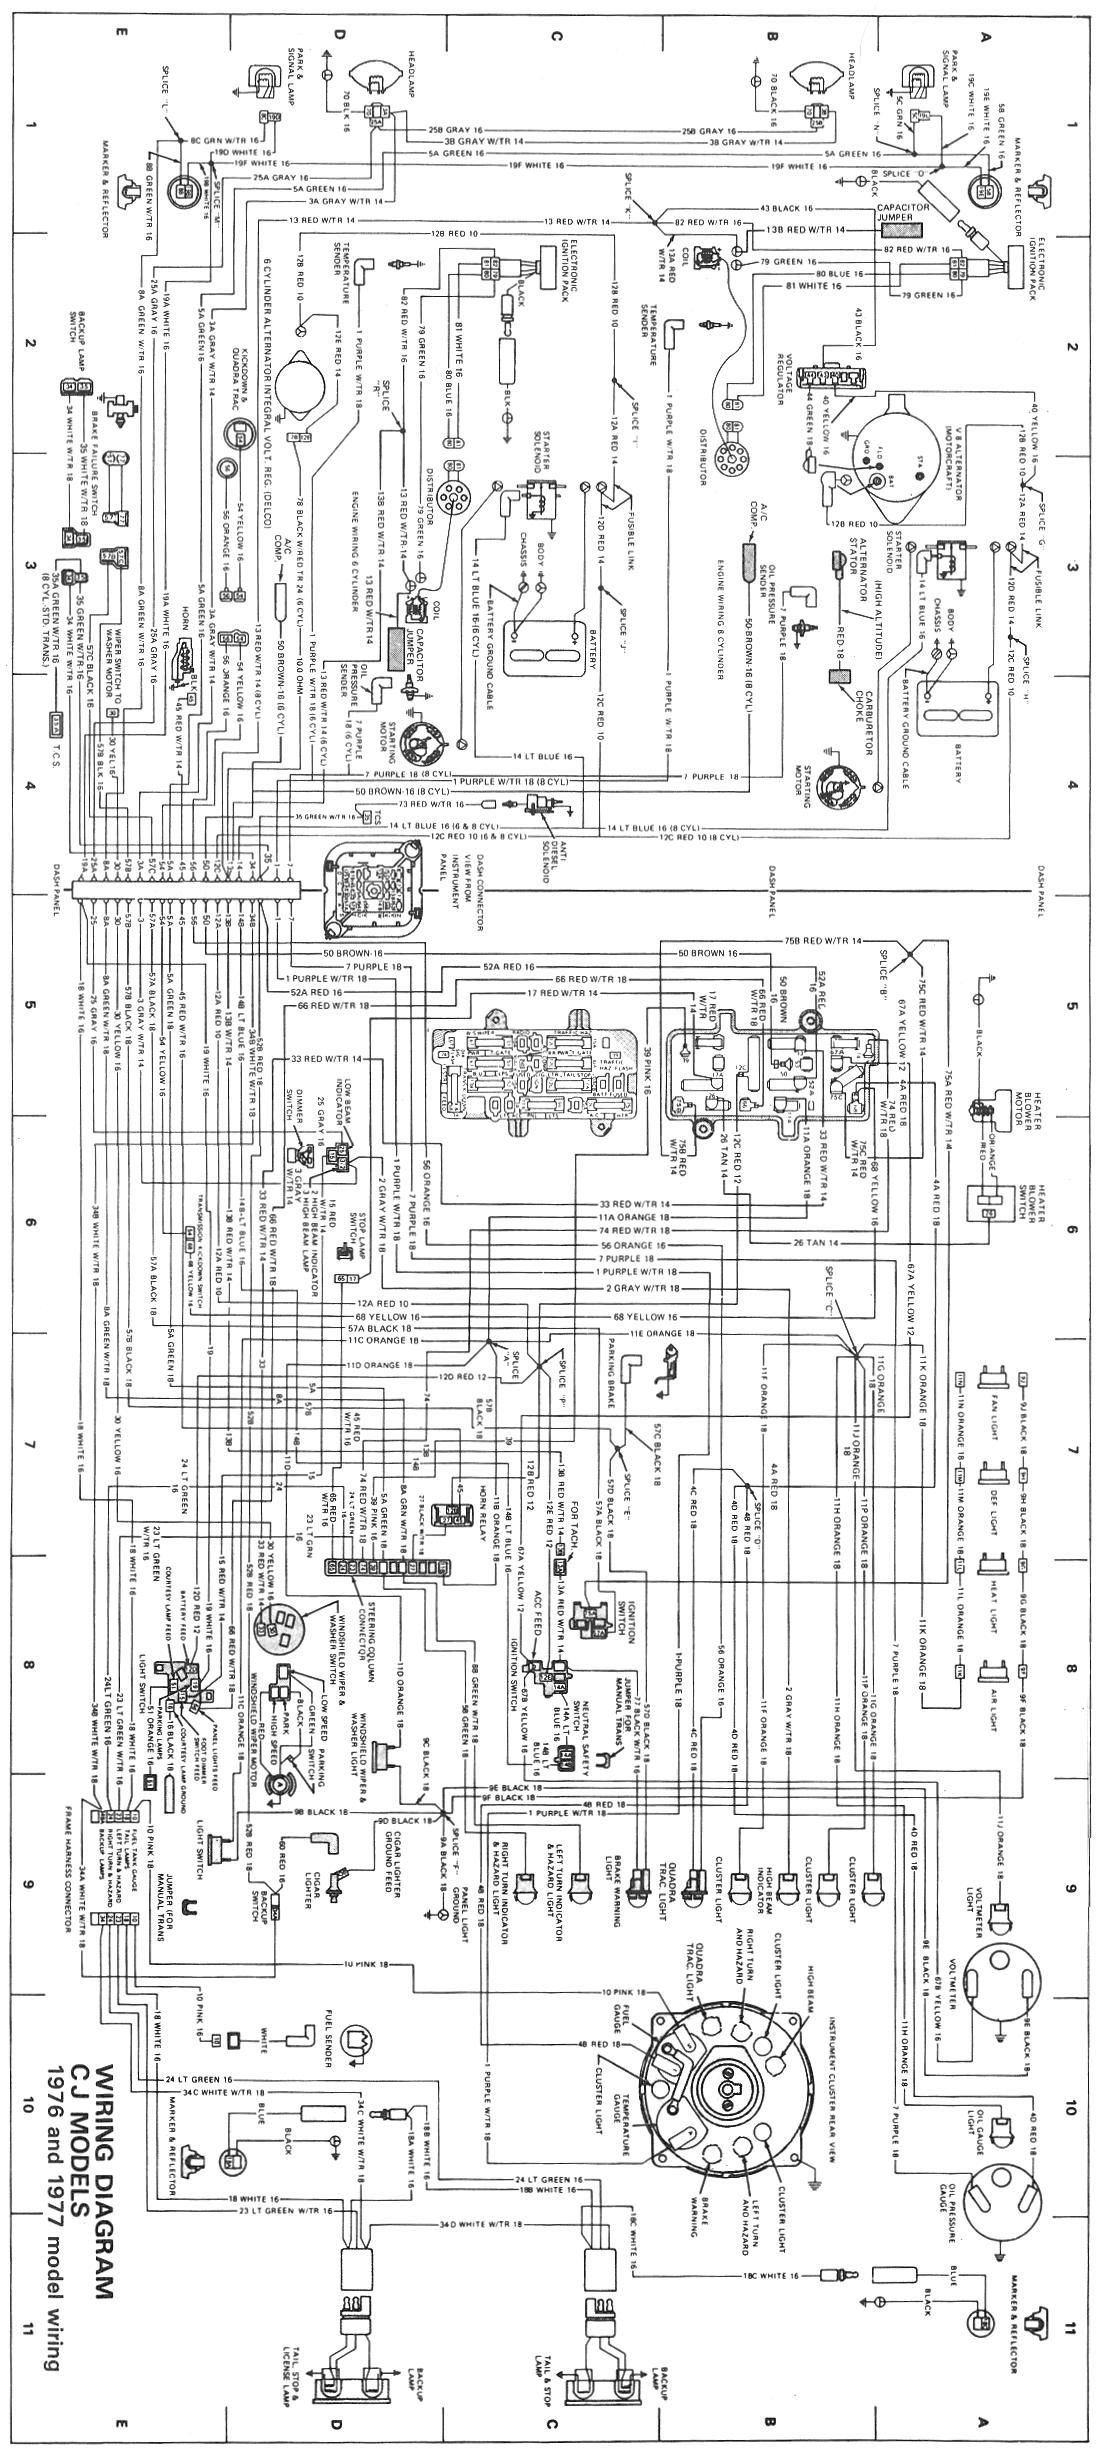 1976 jeep wiring diagram wiring diagram will be a thing u2022 rh exploreandmore co uk 84 Corvette Electrical Schematic 1978 Corvette Wiring Diagram